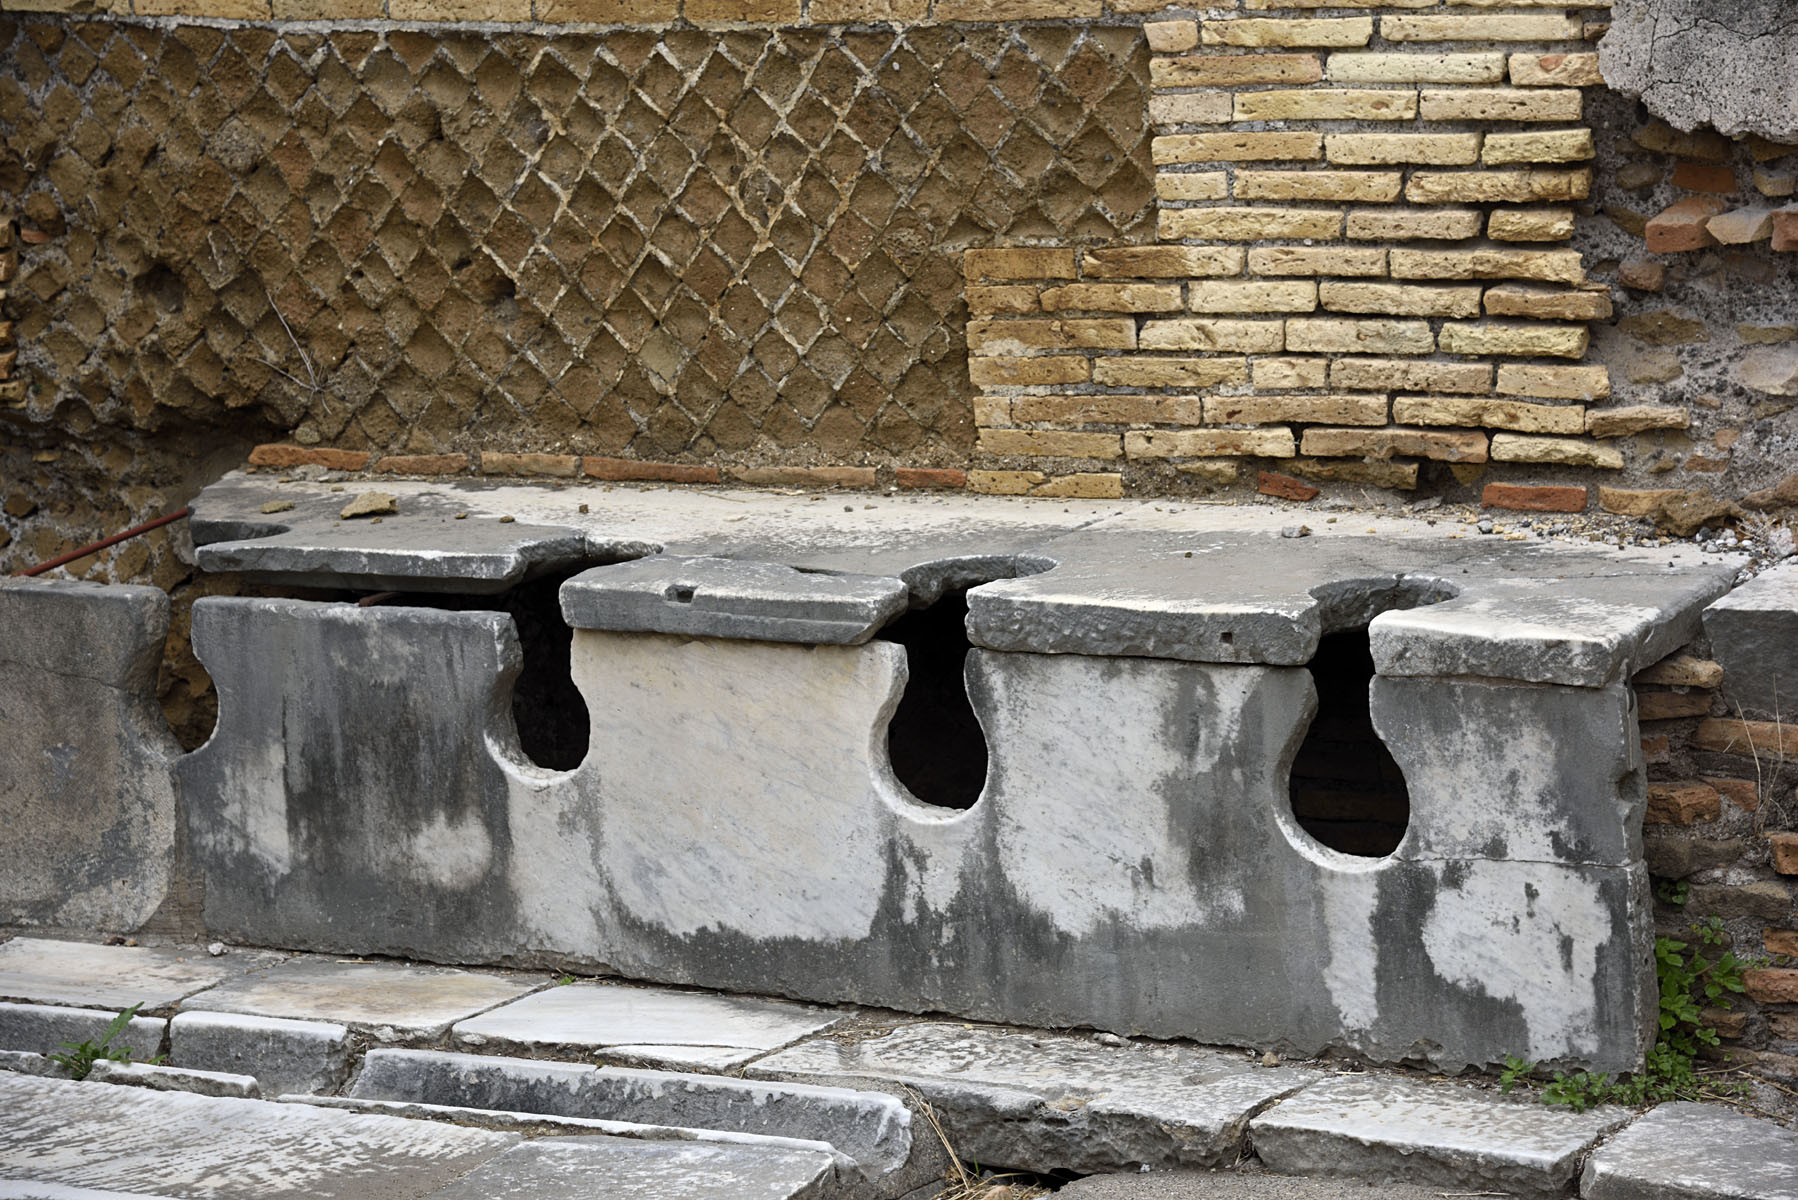 Public latrine (forica). 4th cent. CE. Ostia, Archaeological site